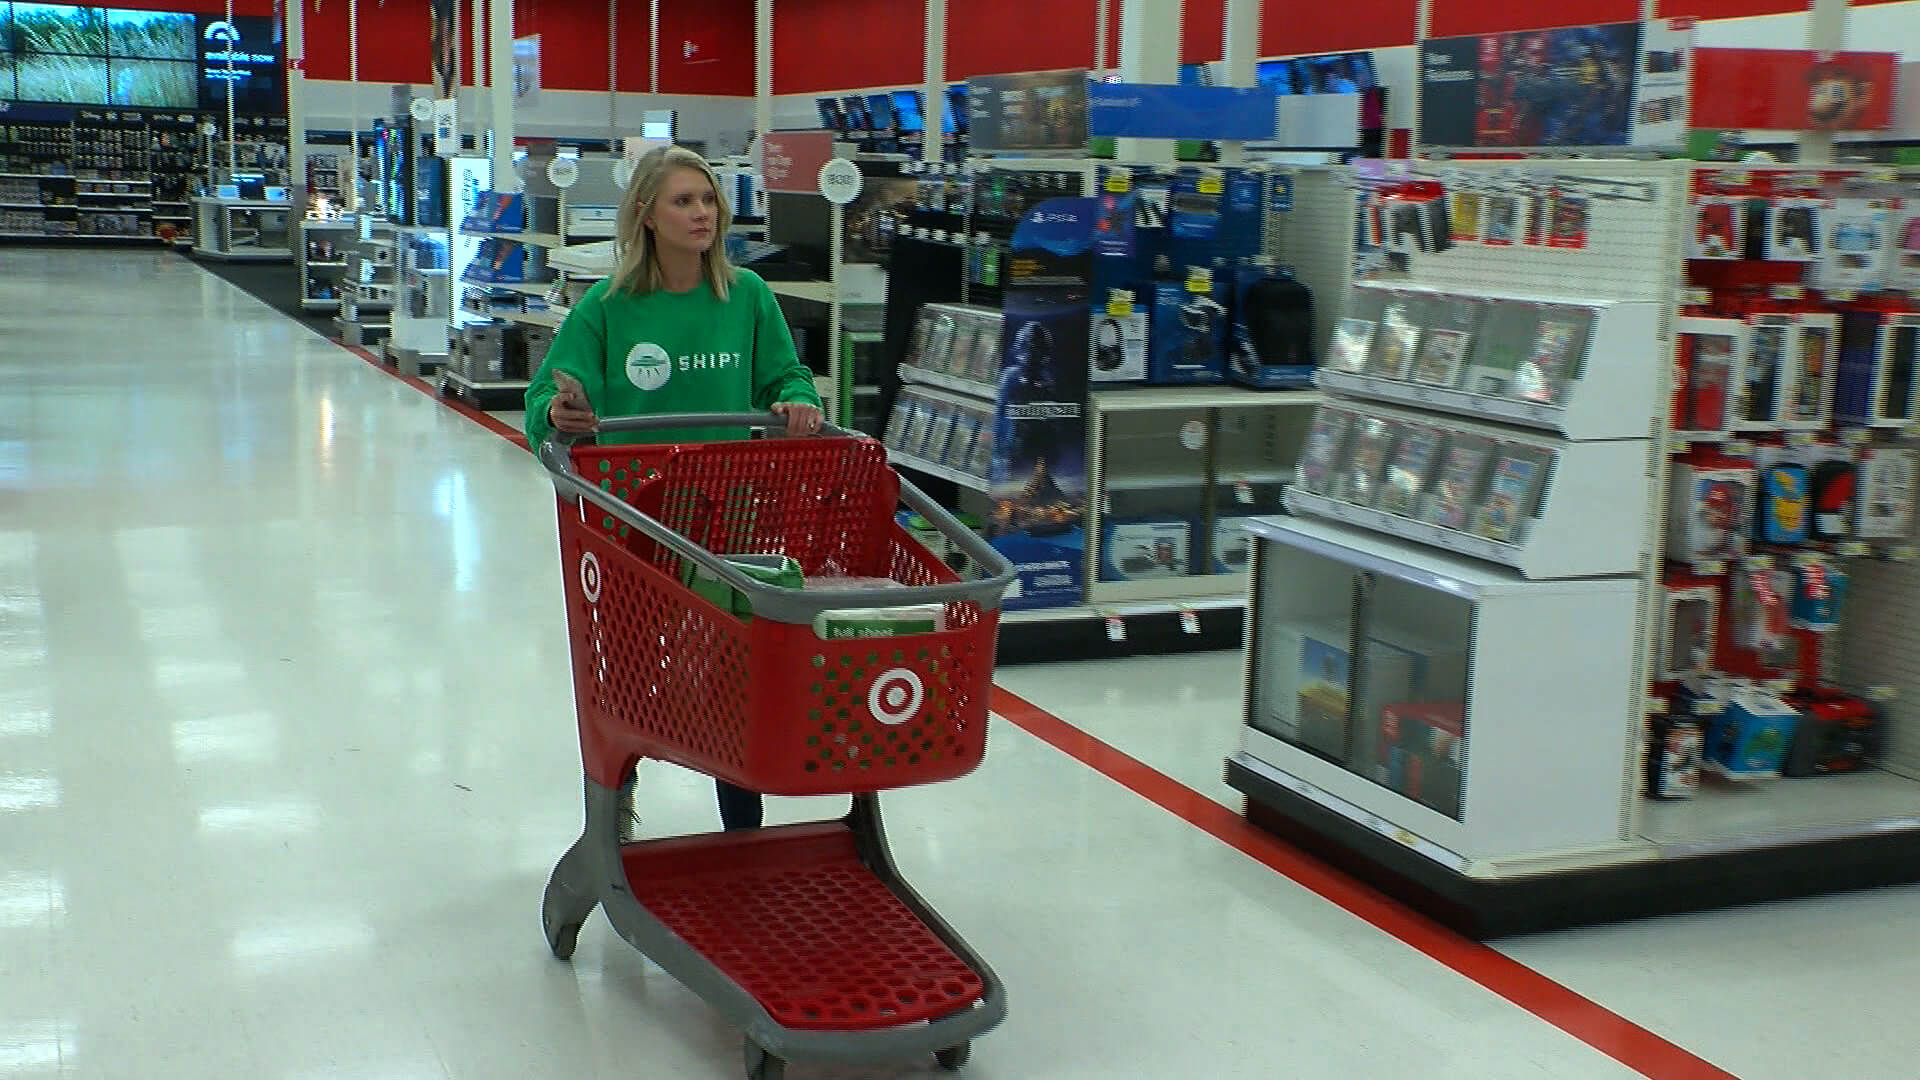 Target expands same-day delivery service Shipt to rival